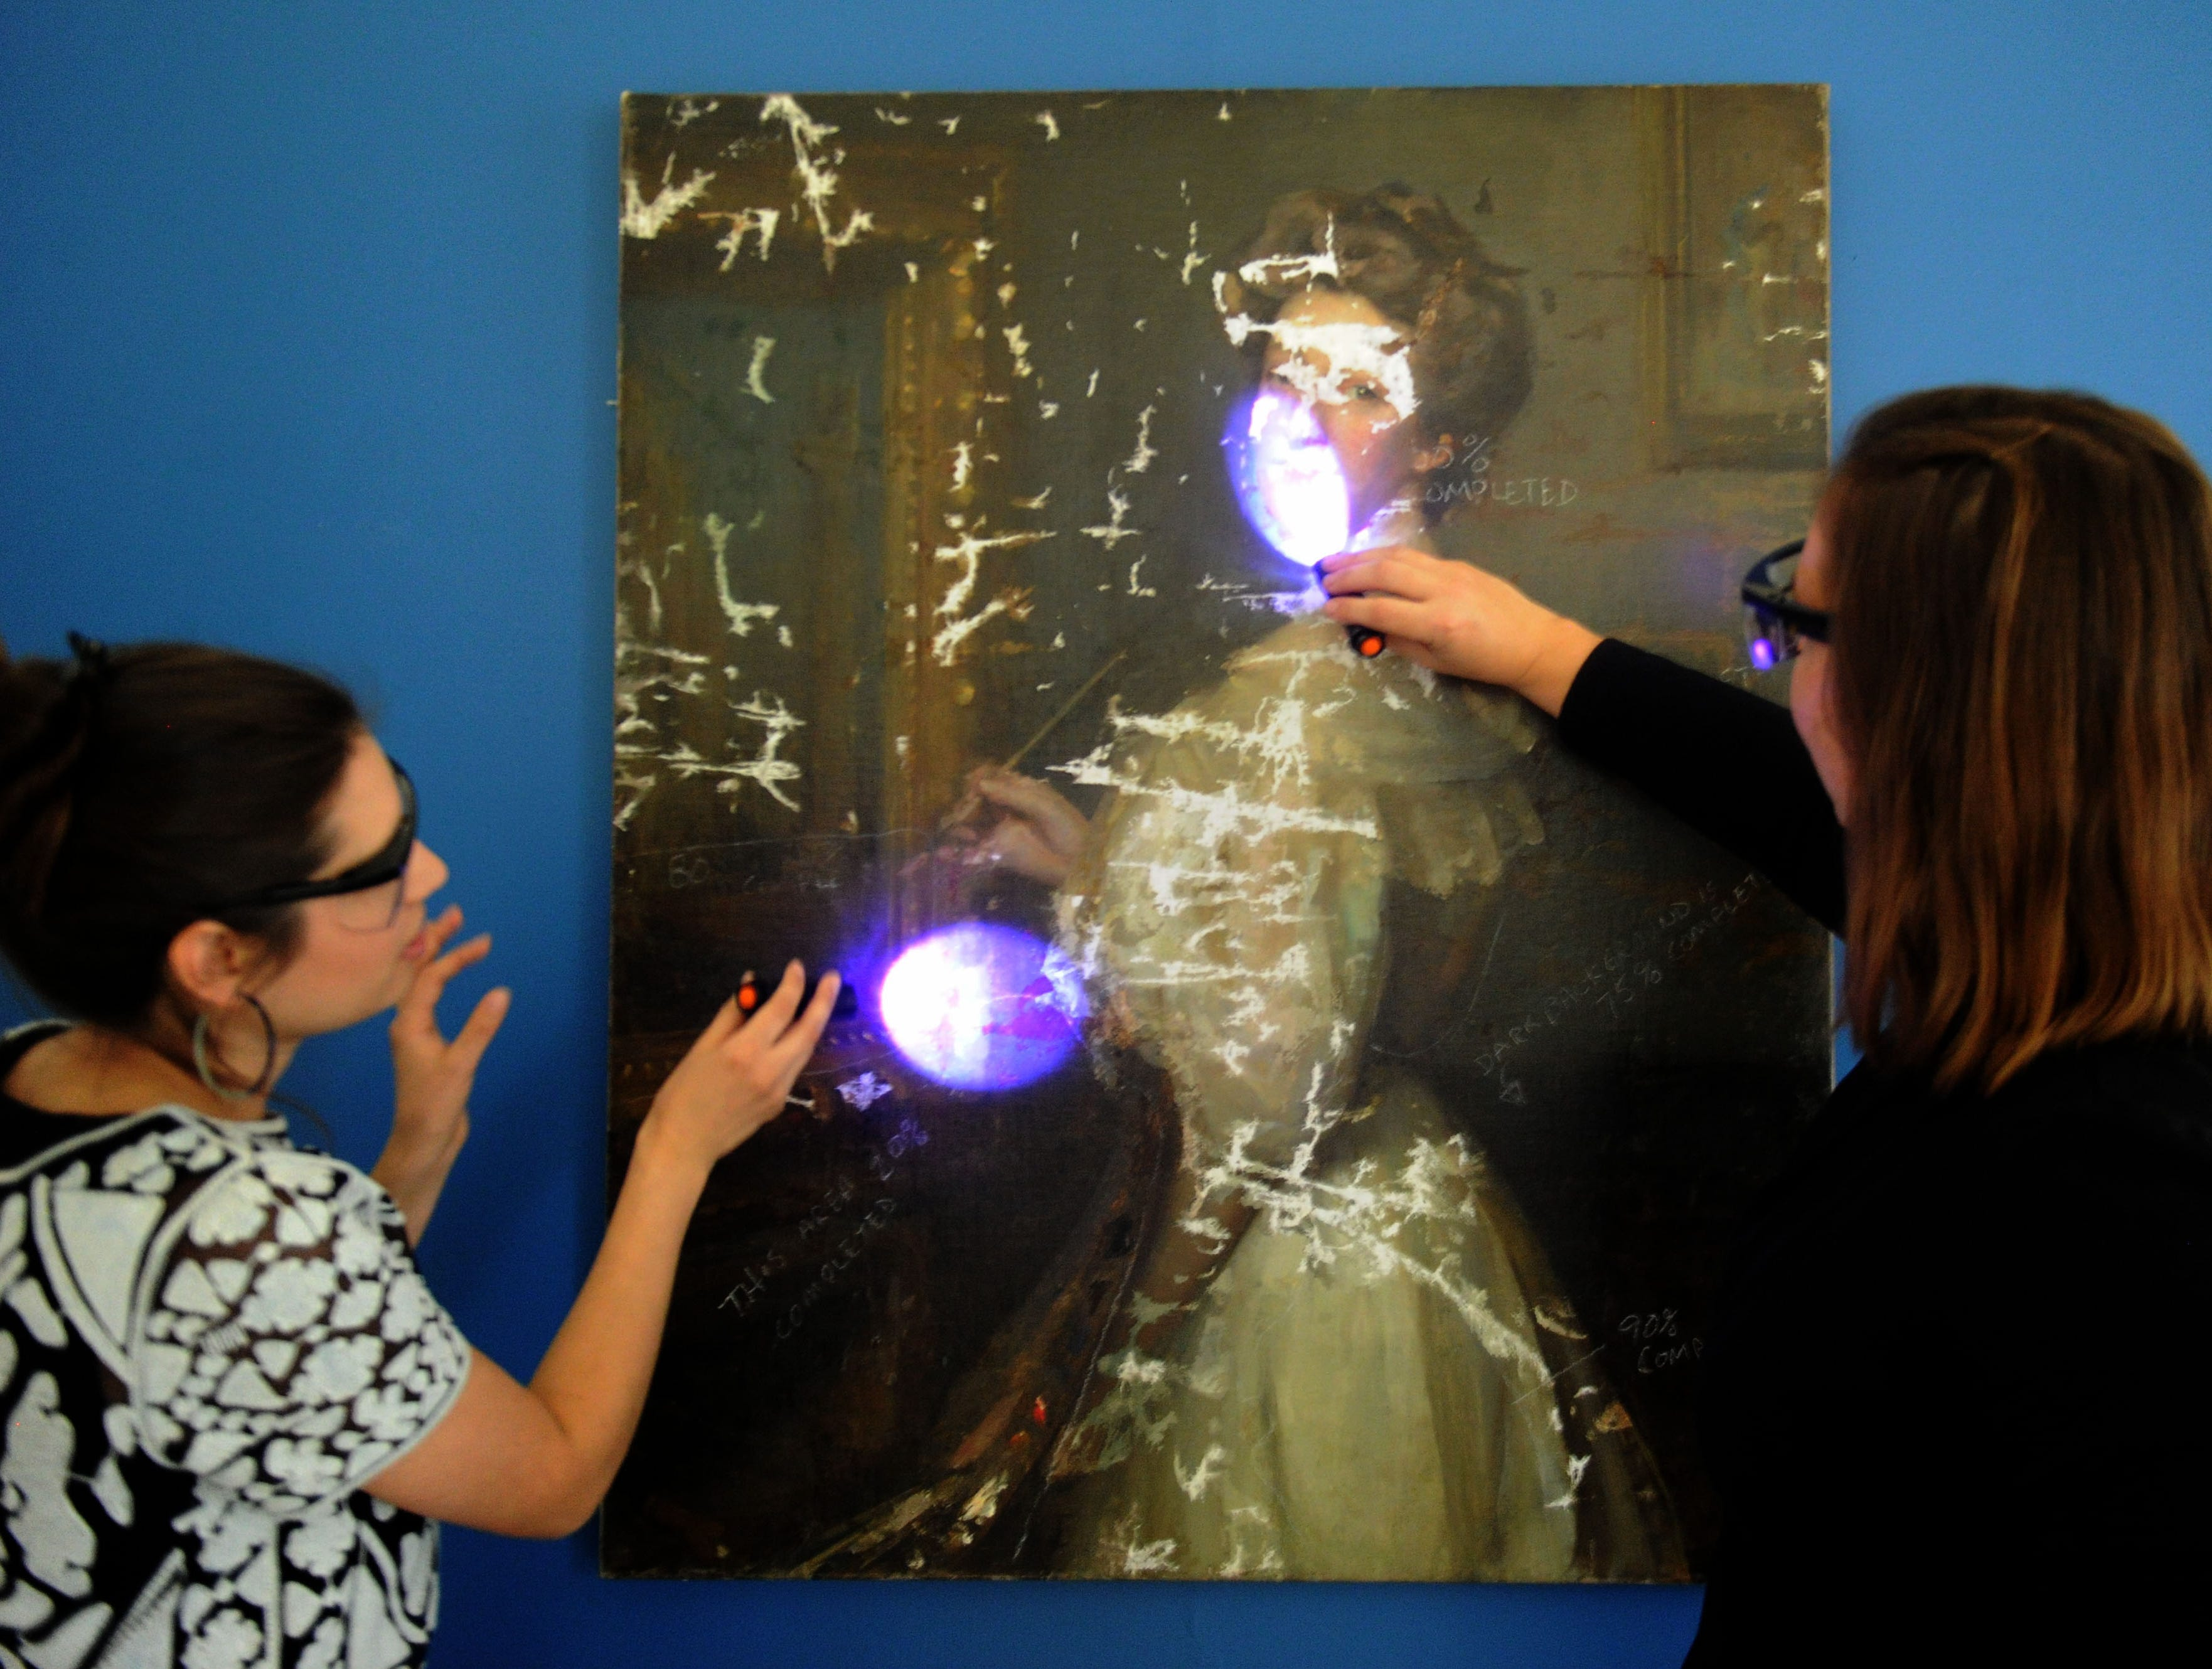 Art exhibit at CLU will provide chemistry students with hands-on investigative experience